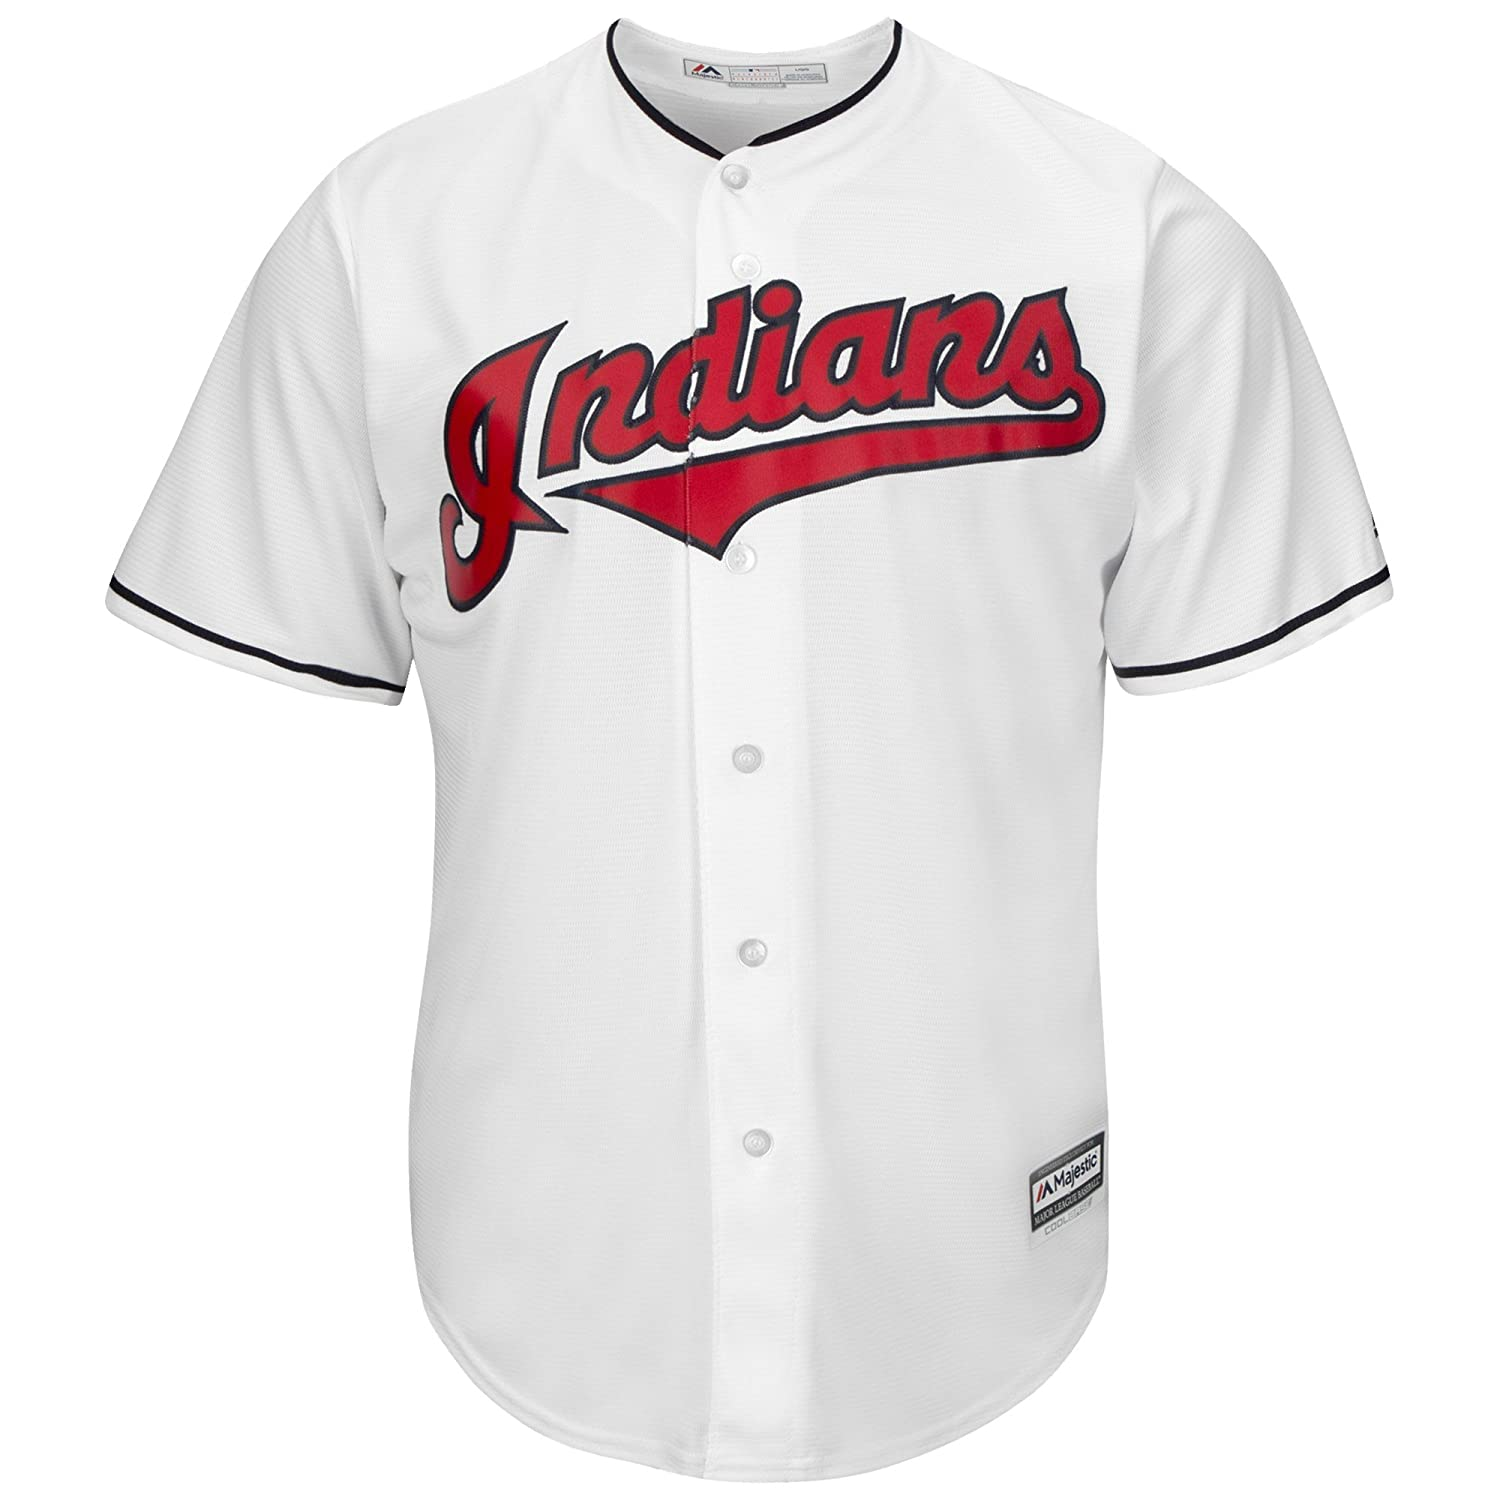 18971cfa5 Amazon.com : Majestic Michael Brantley Cleveland Indians #23 Youth Cool  Base Home Jersey White : Sports & Outdoors